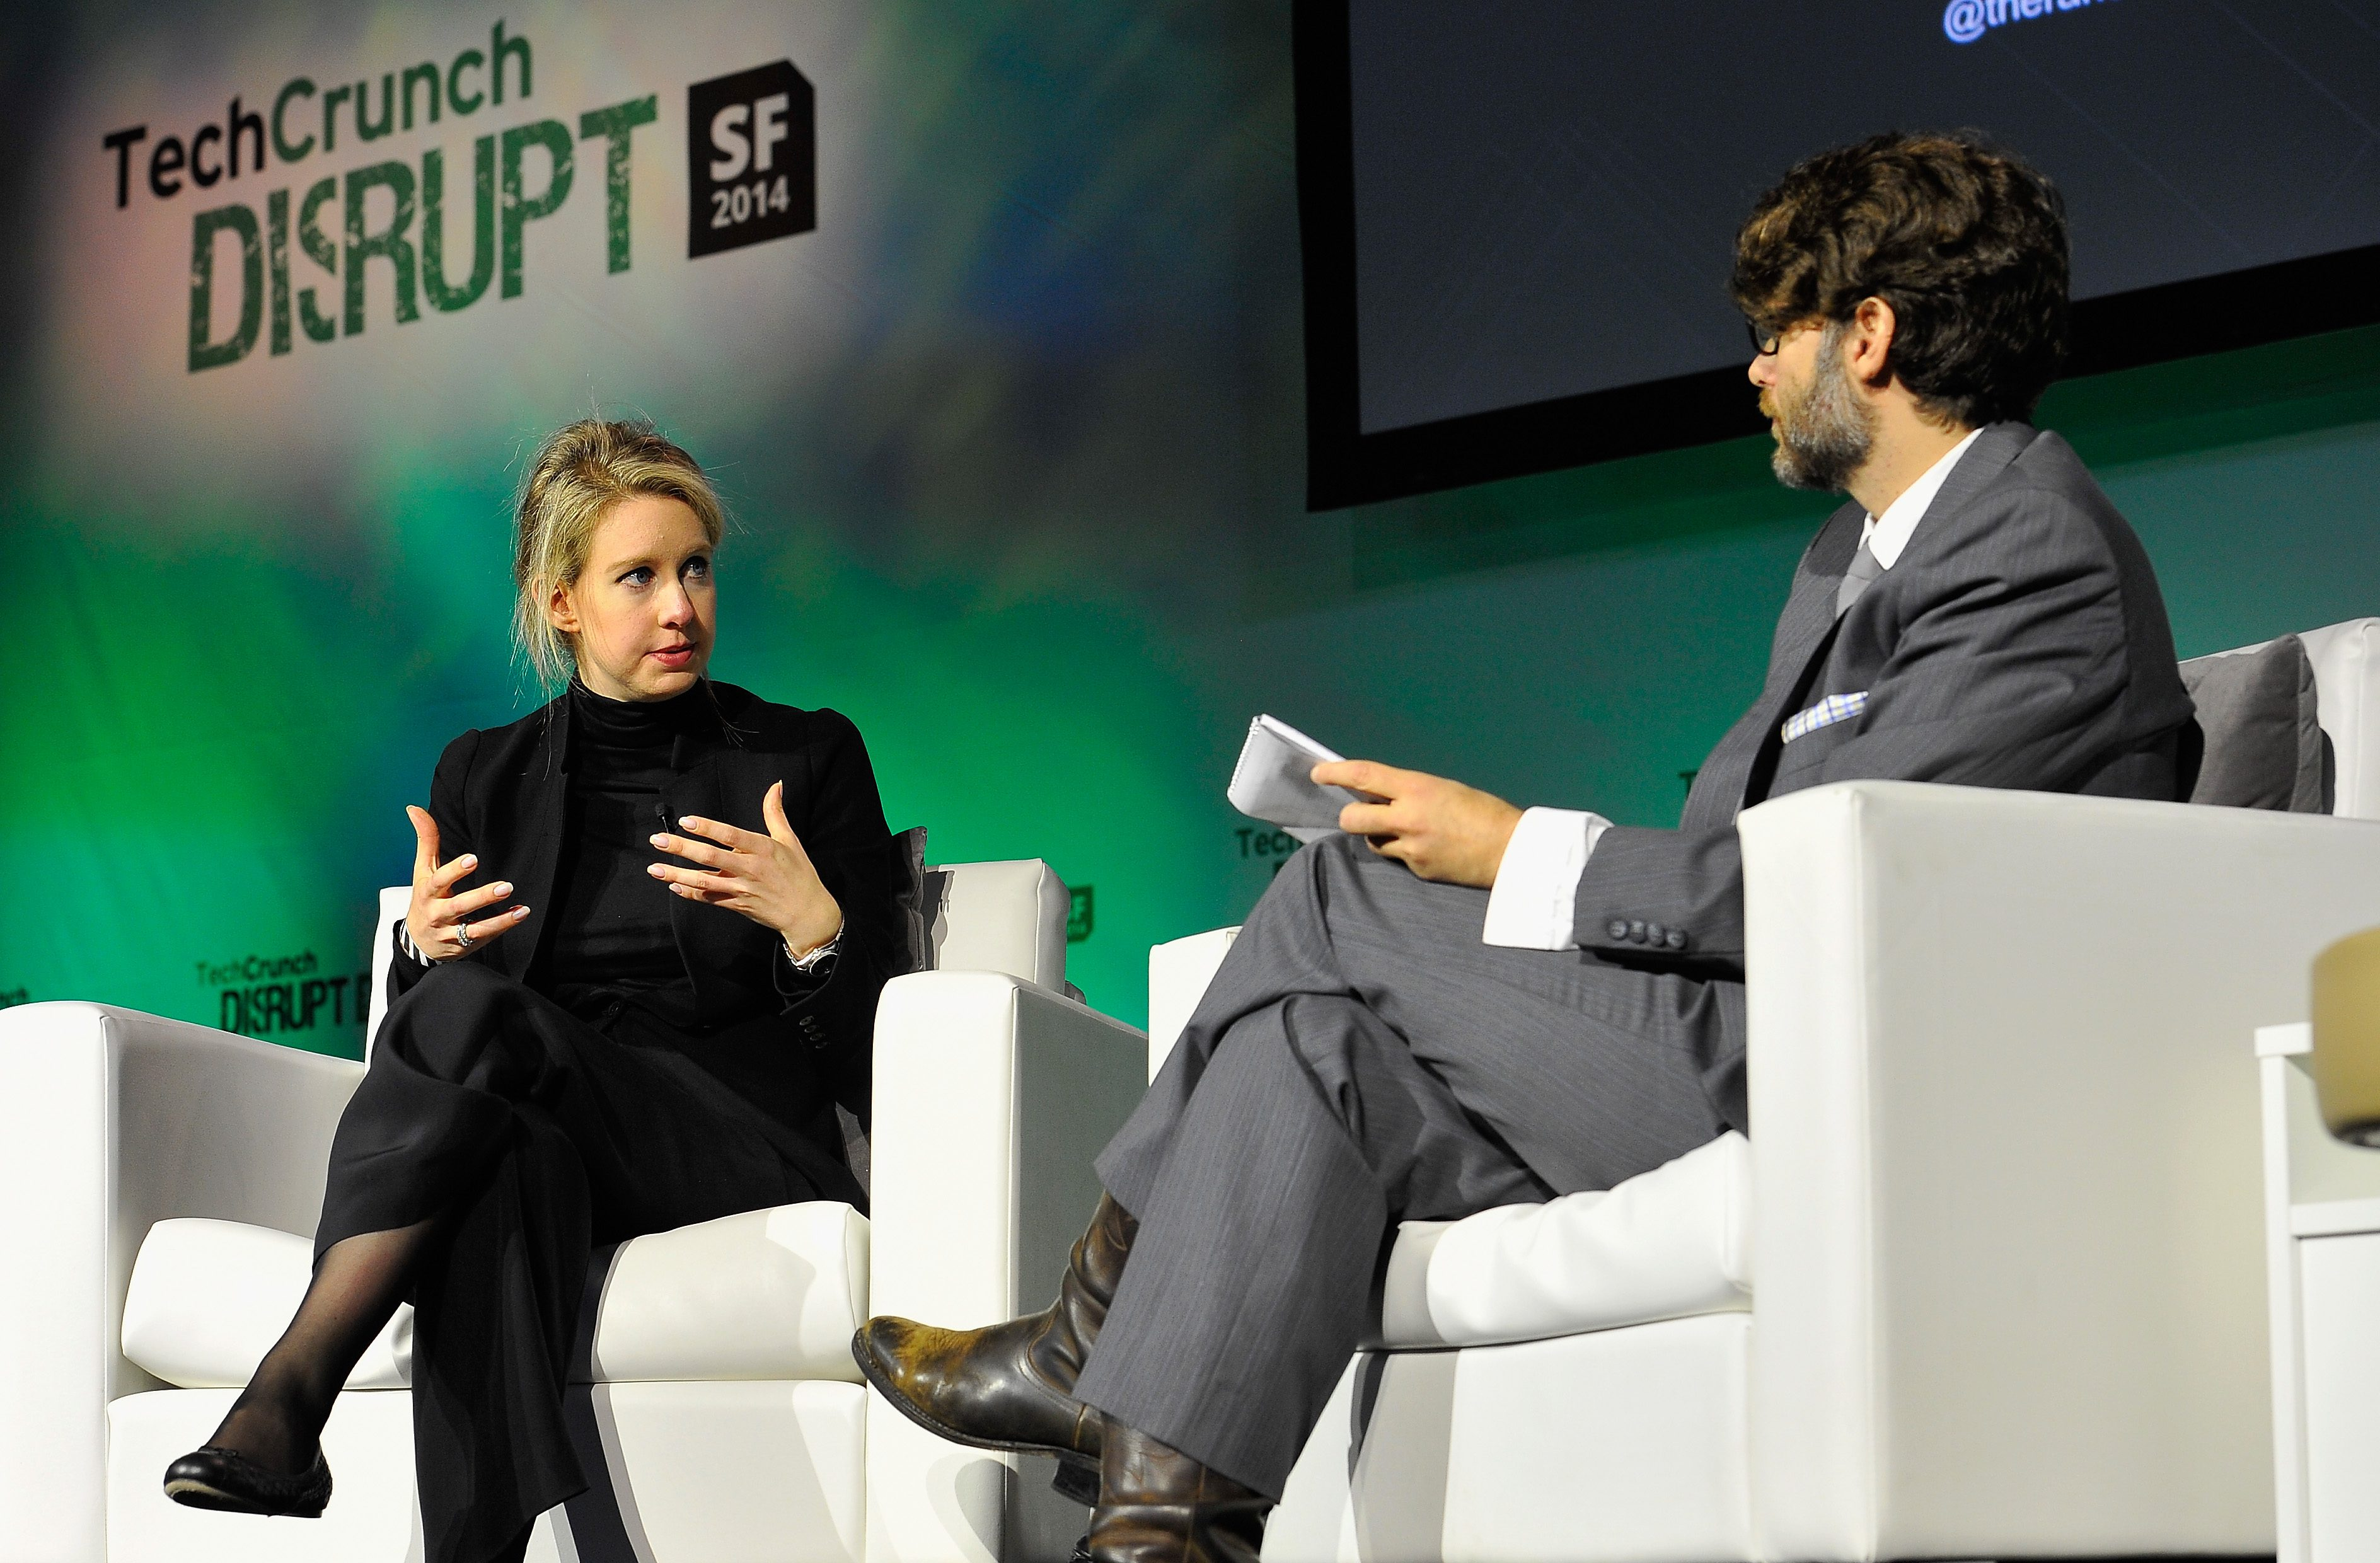 Theranos Chairman, CEO and Founder Elizabeth Holmes (L) and TechCrunch Writer and Moderator Jonathan Shieber